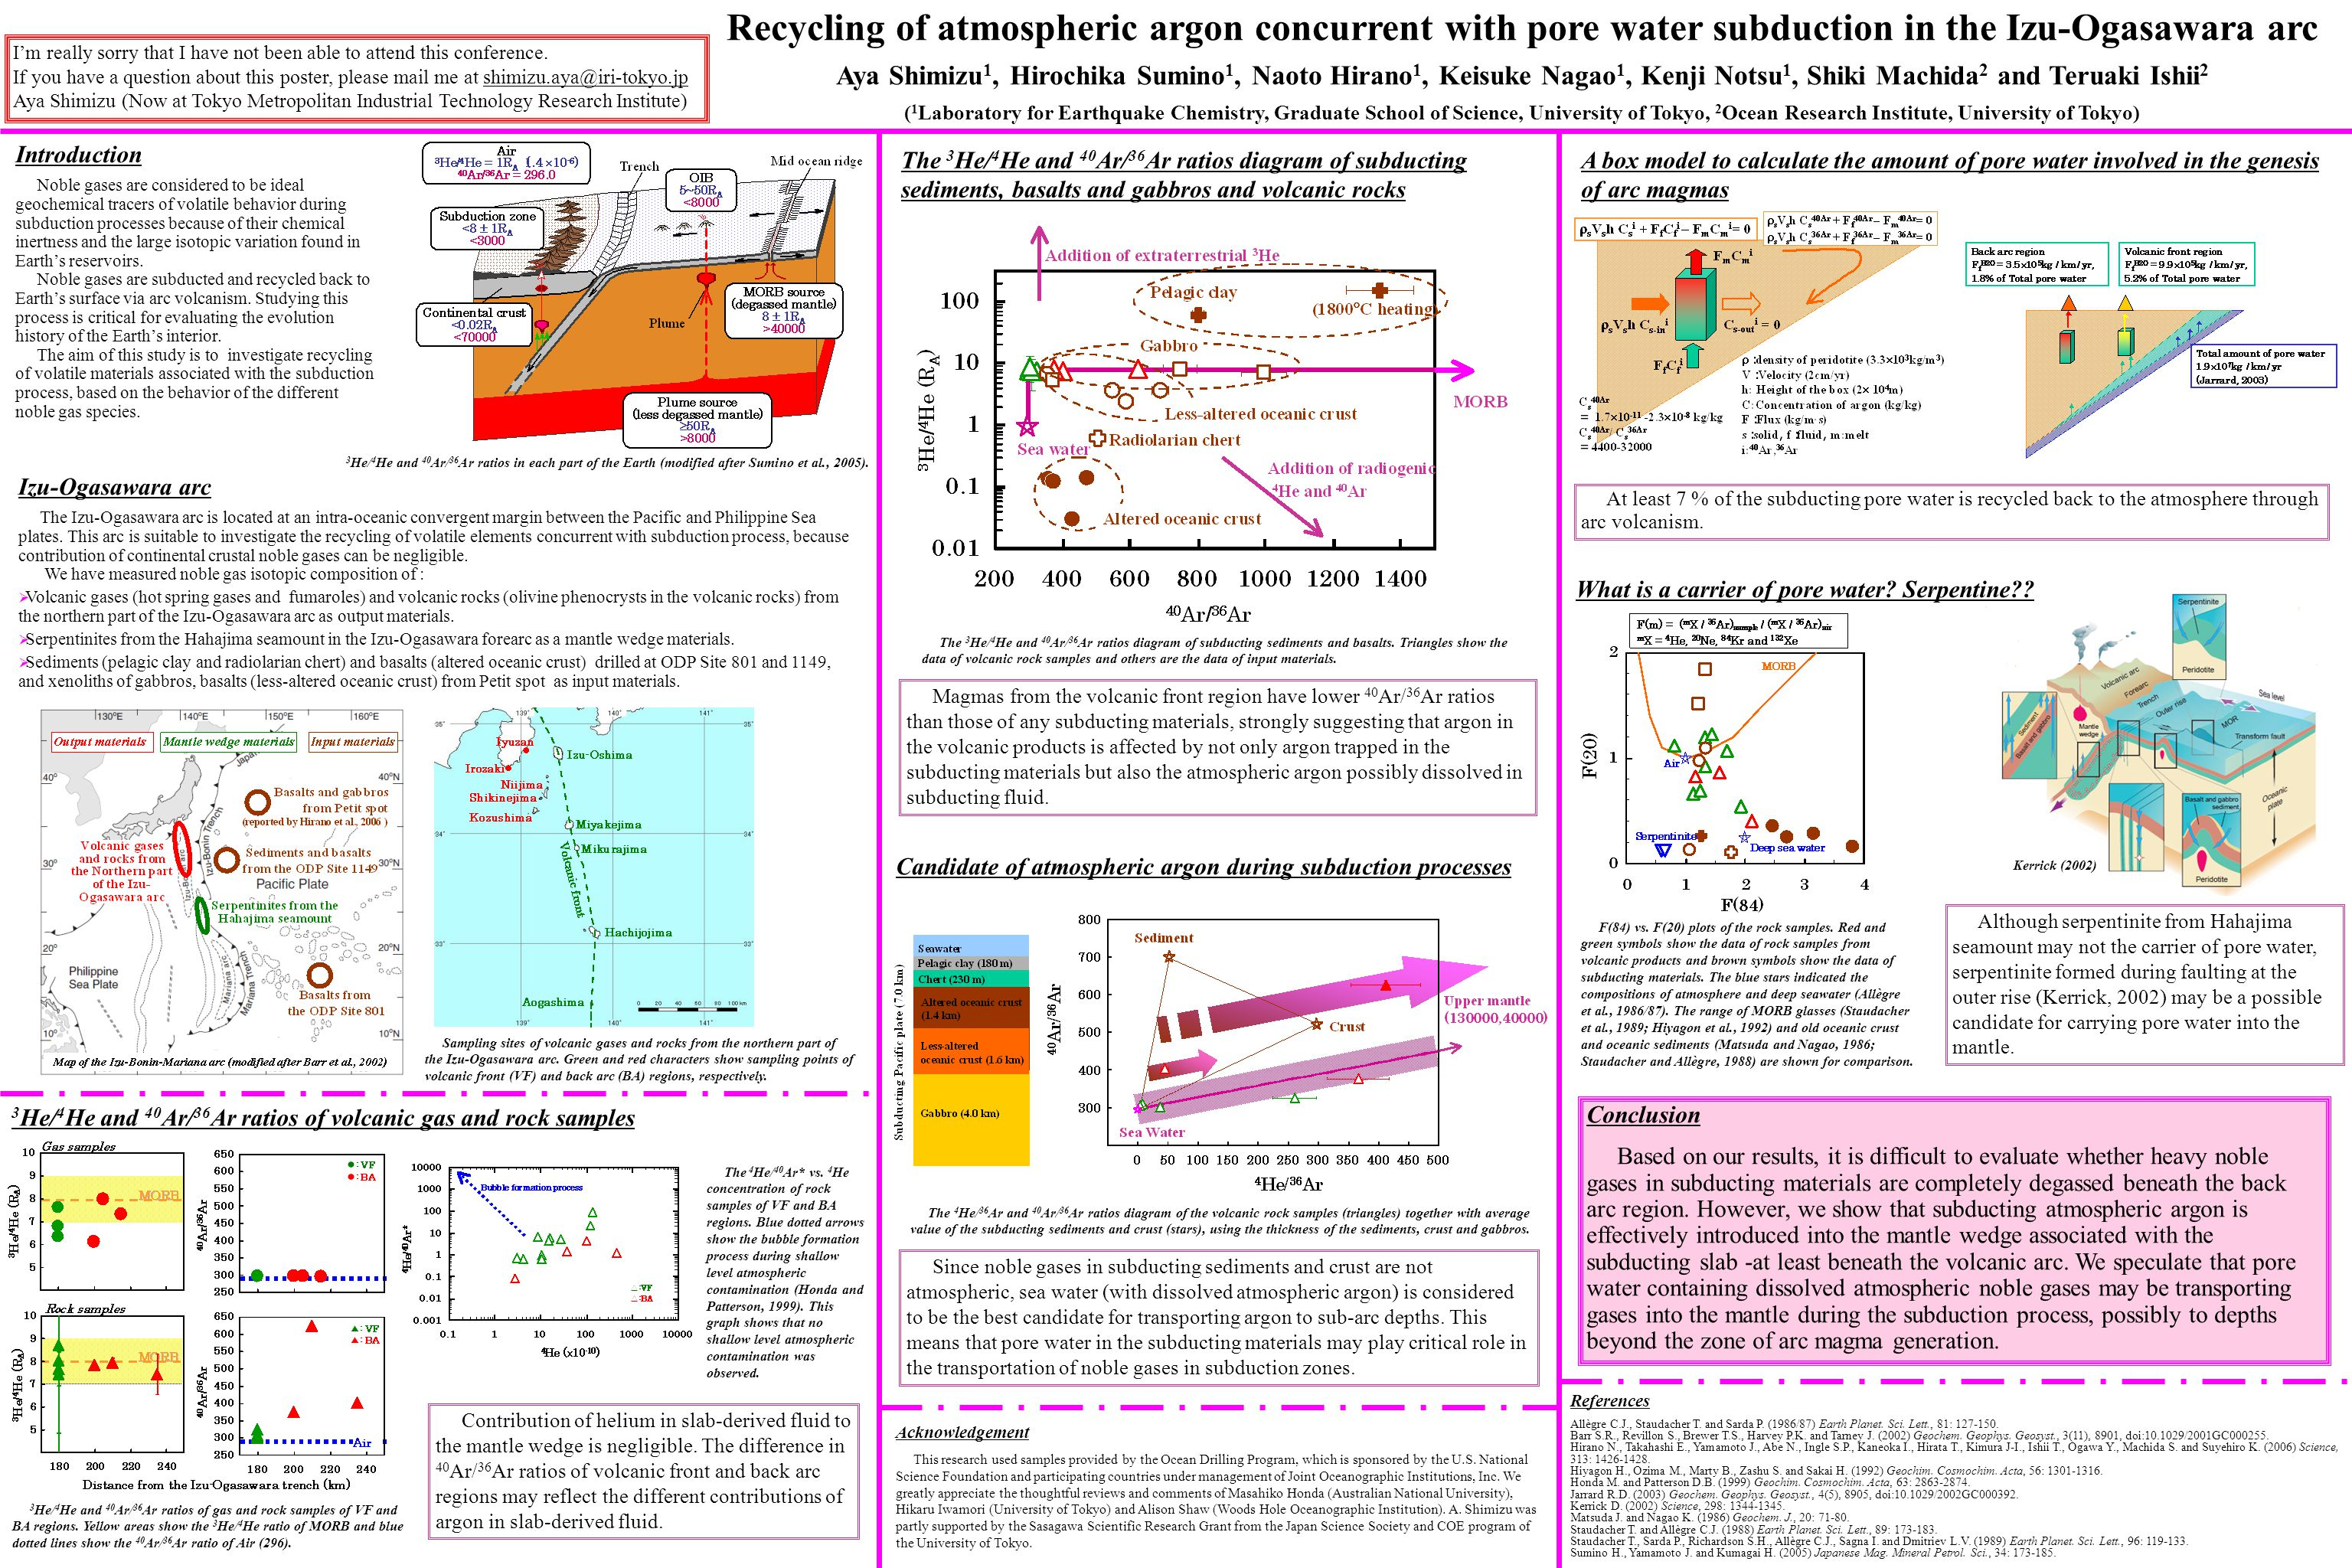 Conclusion Based on our results, it is difficult to evaluate whether heavy noble gases in subducting materials are completely degassed beneath the back arc region.